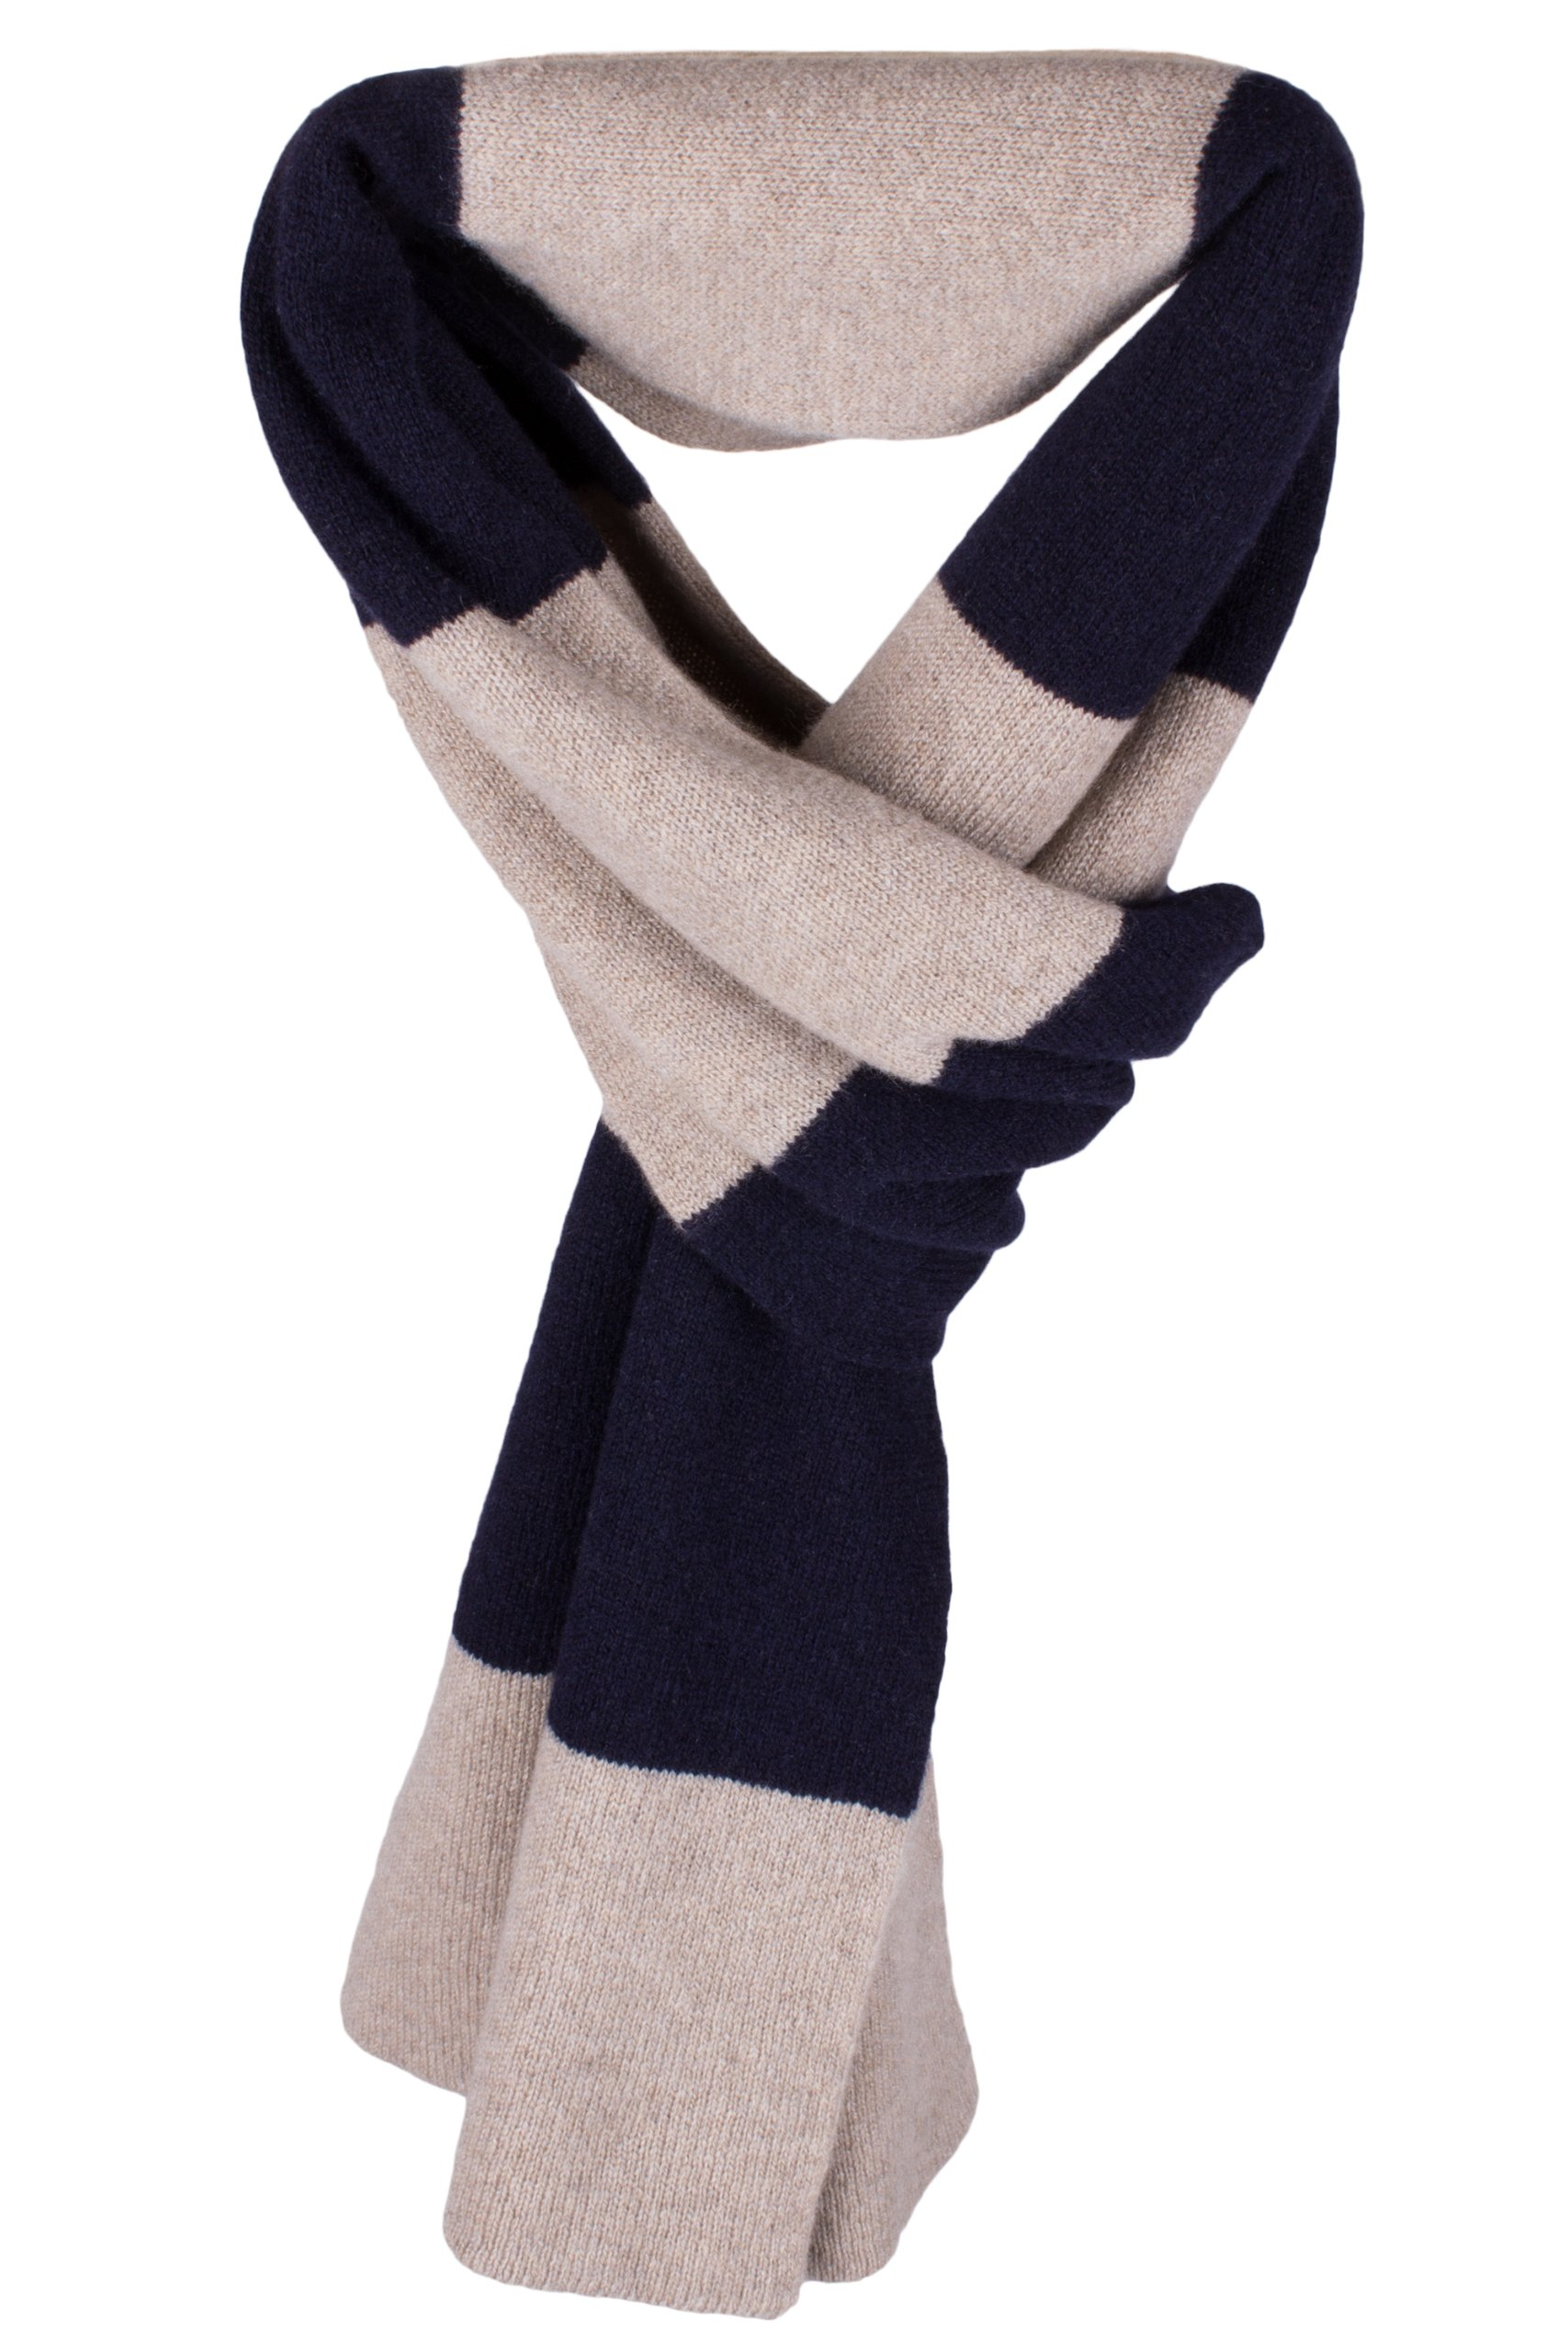 Mens Striped 100% Cashmere Scarf - Natural / Dark Navy - hand made in Scotland by Love Cashmere